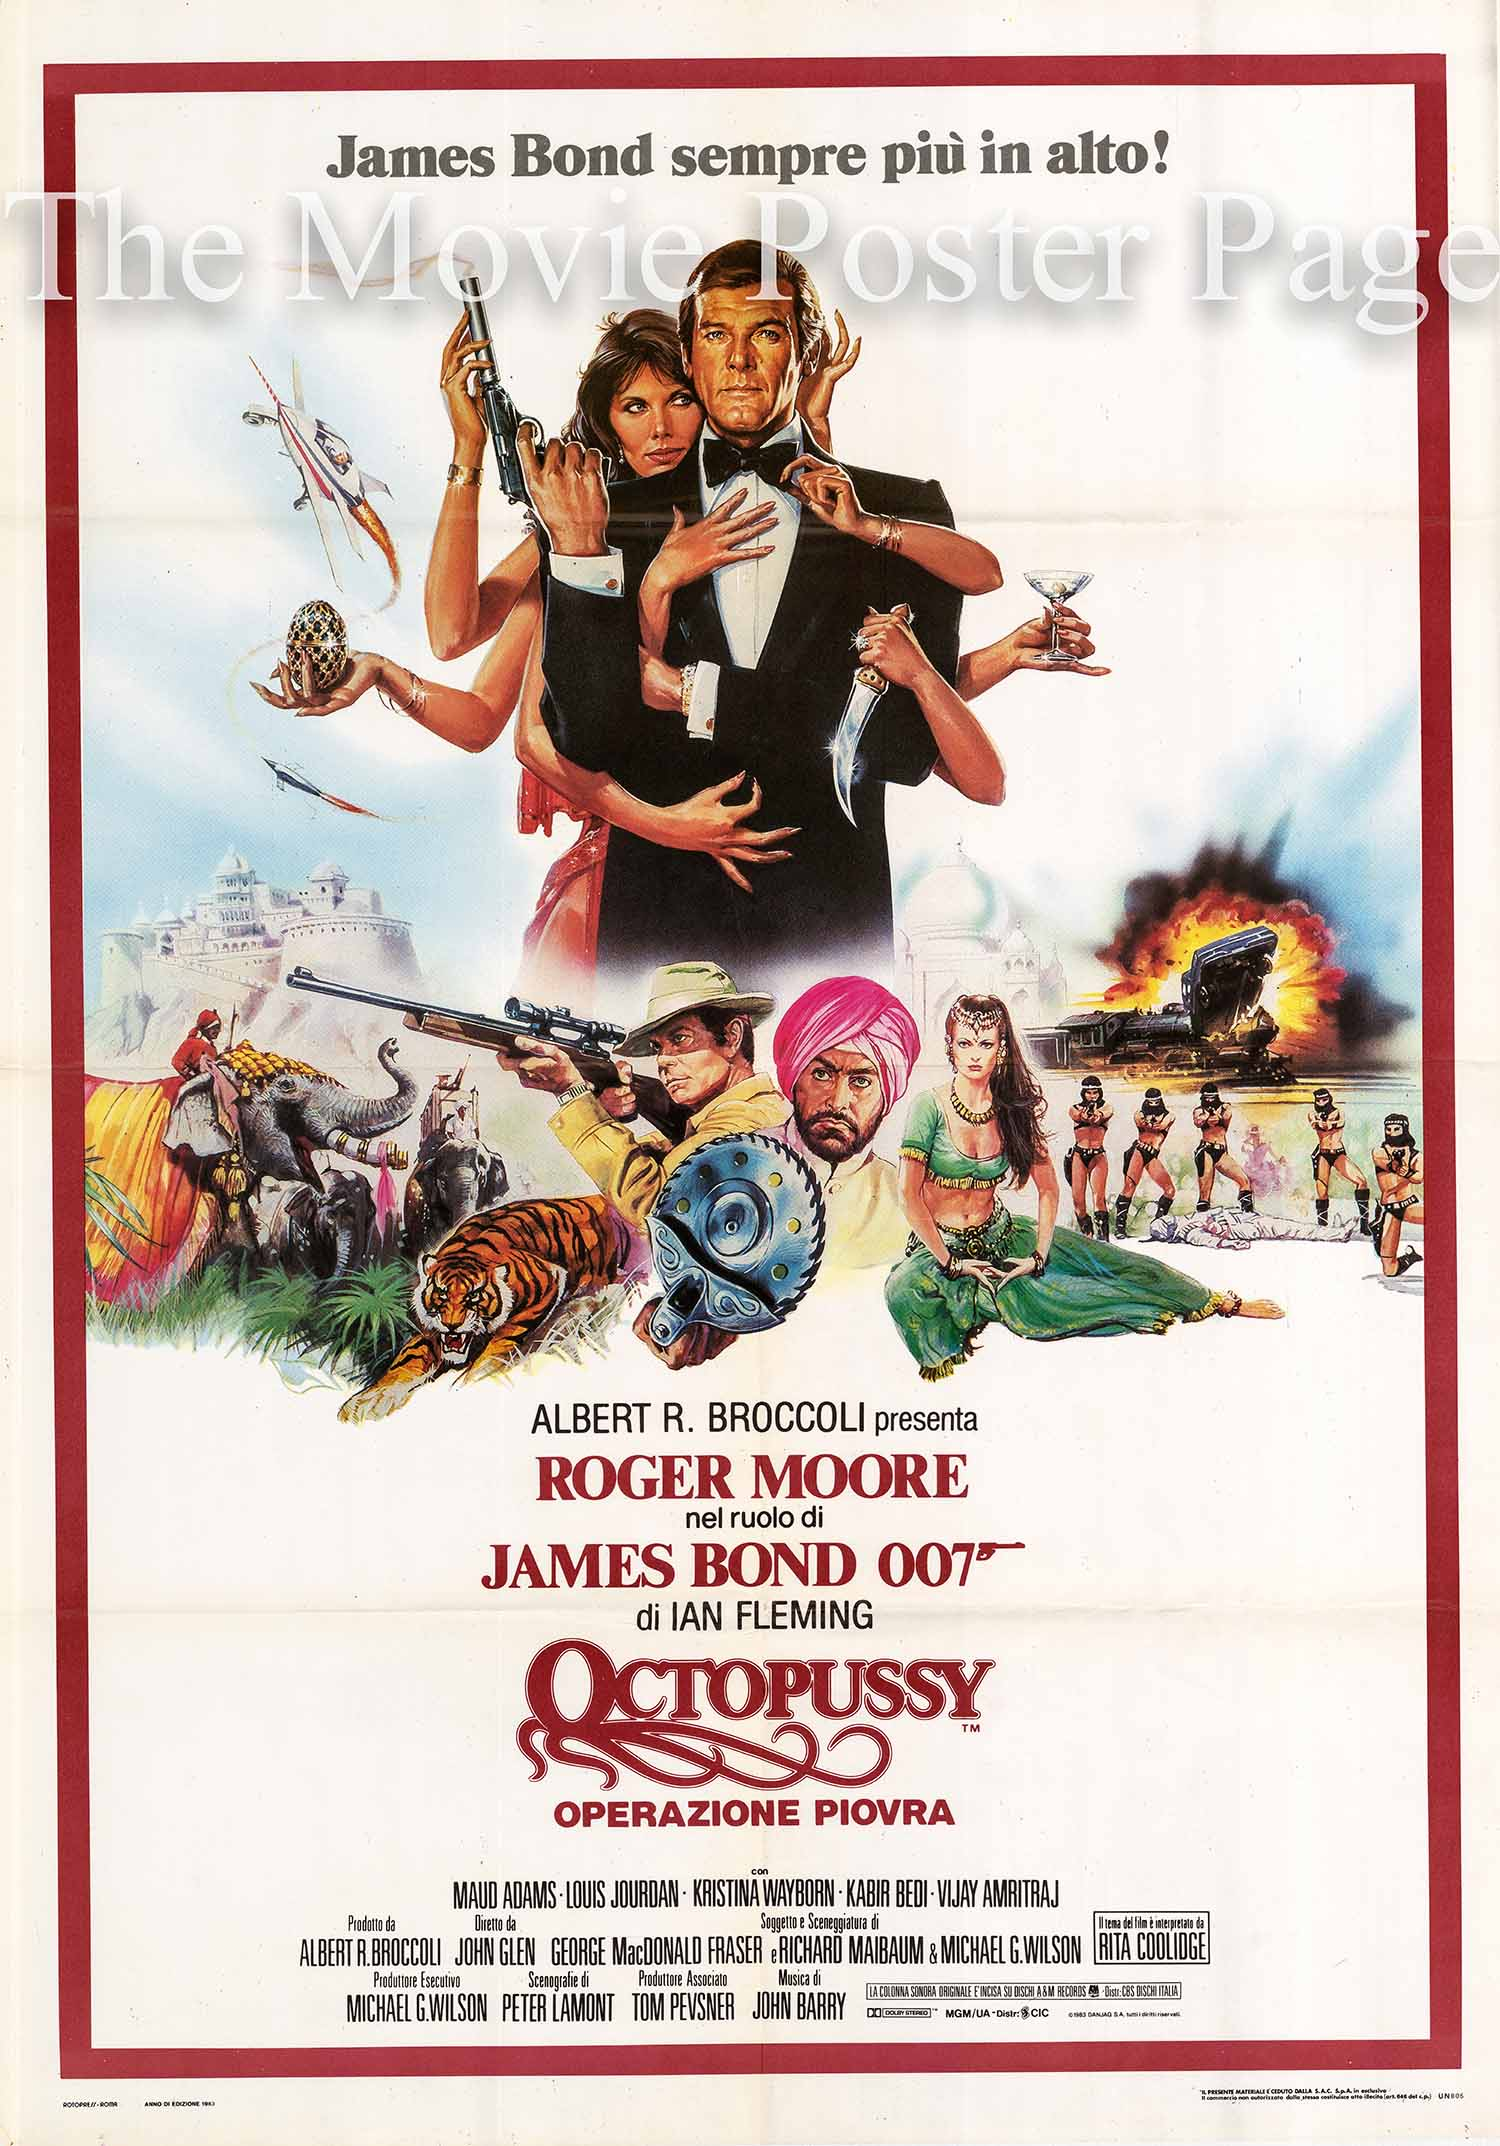 Pictured is an Italian two-sheet poster designed to promote the 1983 John Glen film Octopussy starring Roger Moore as James Bond.